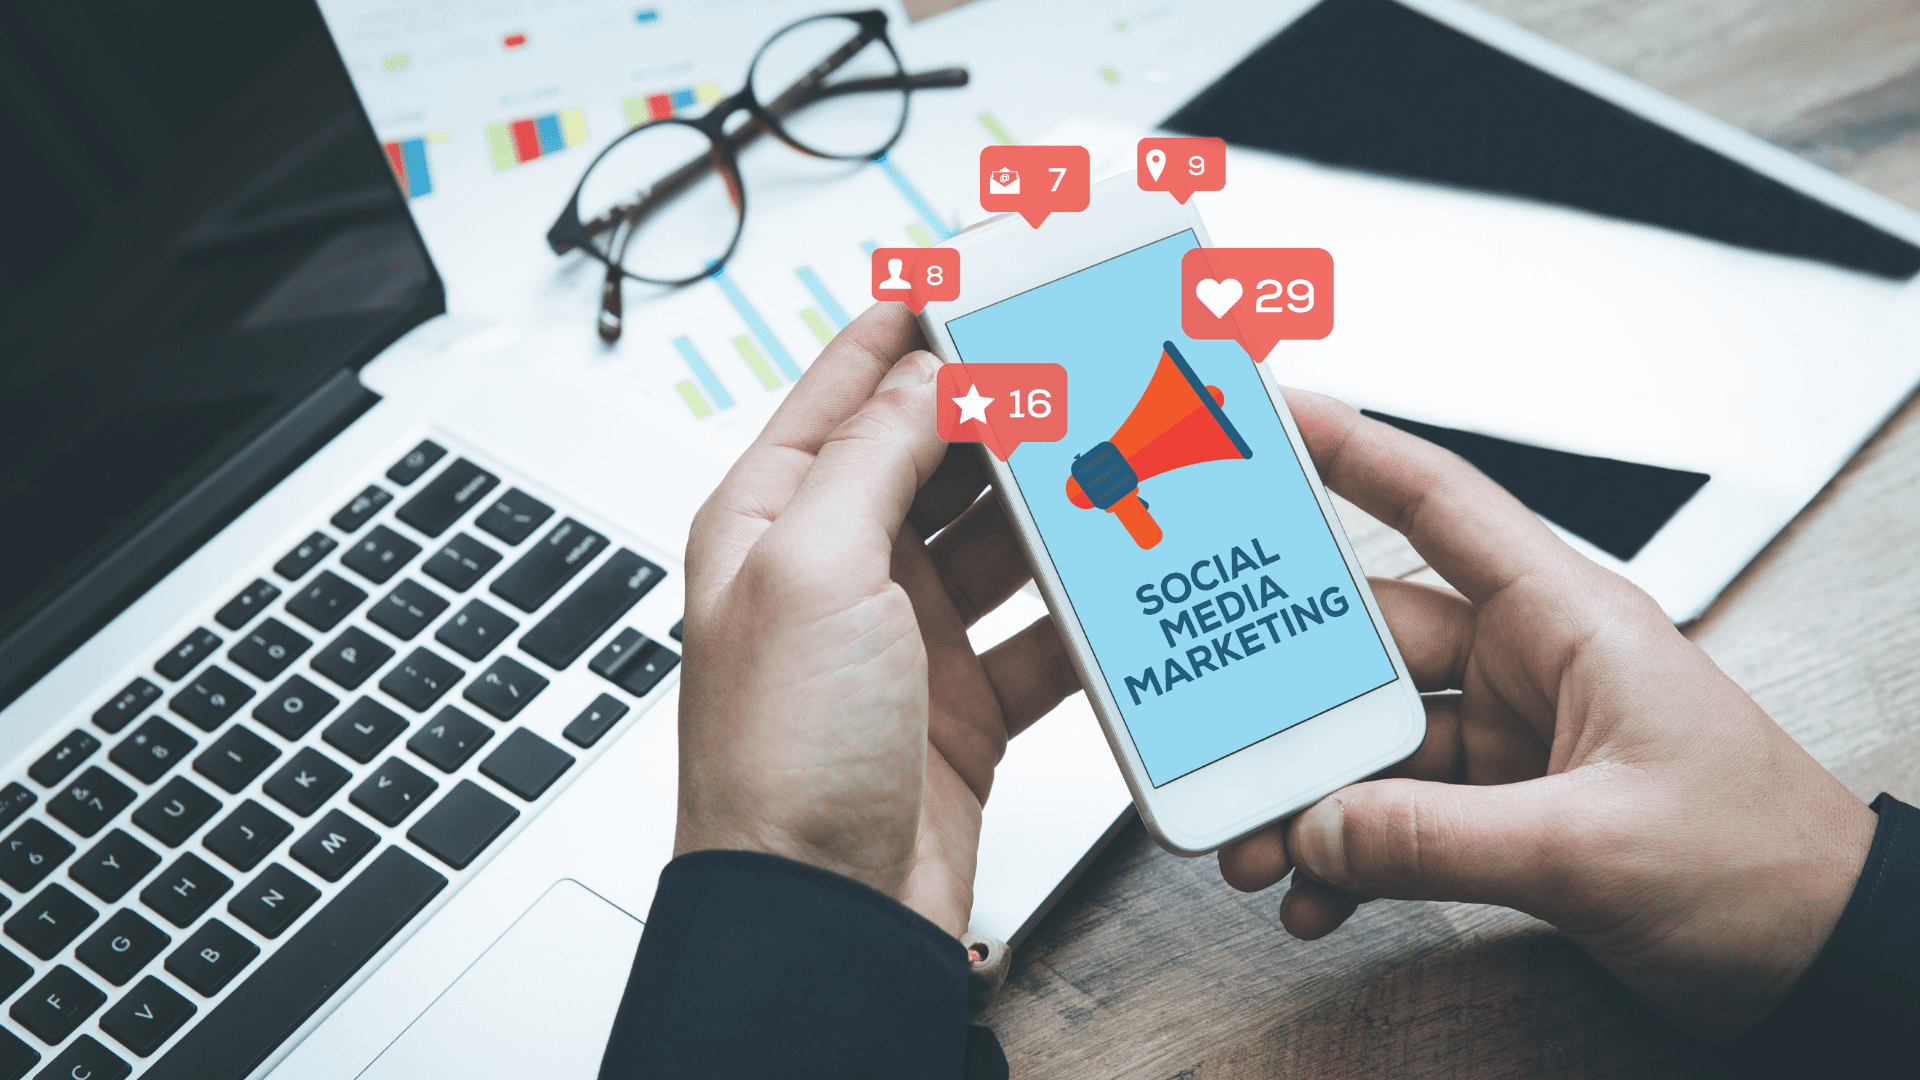 7 Social Media Marketing Tips from the Pros